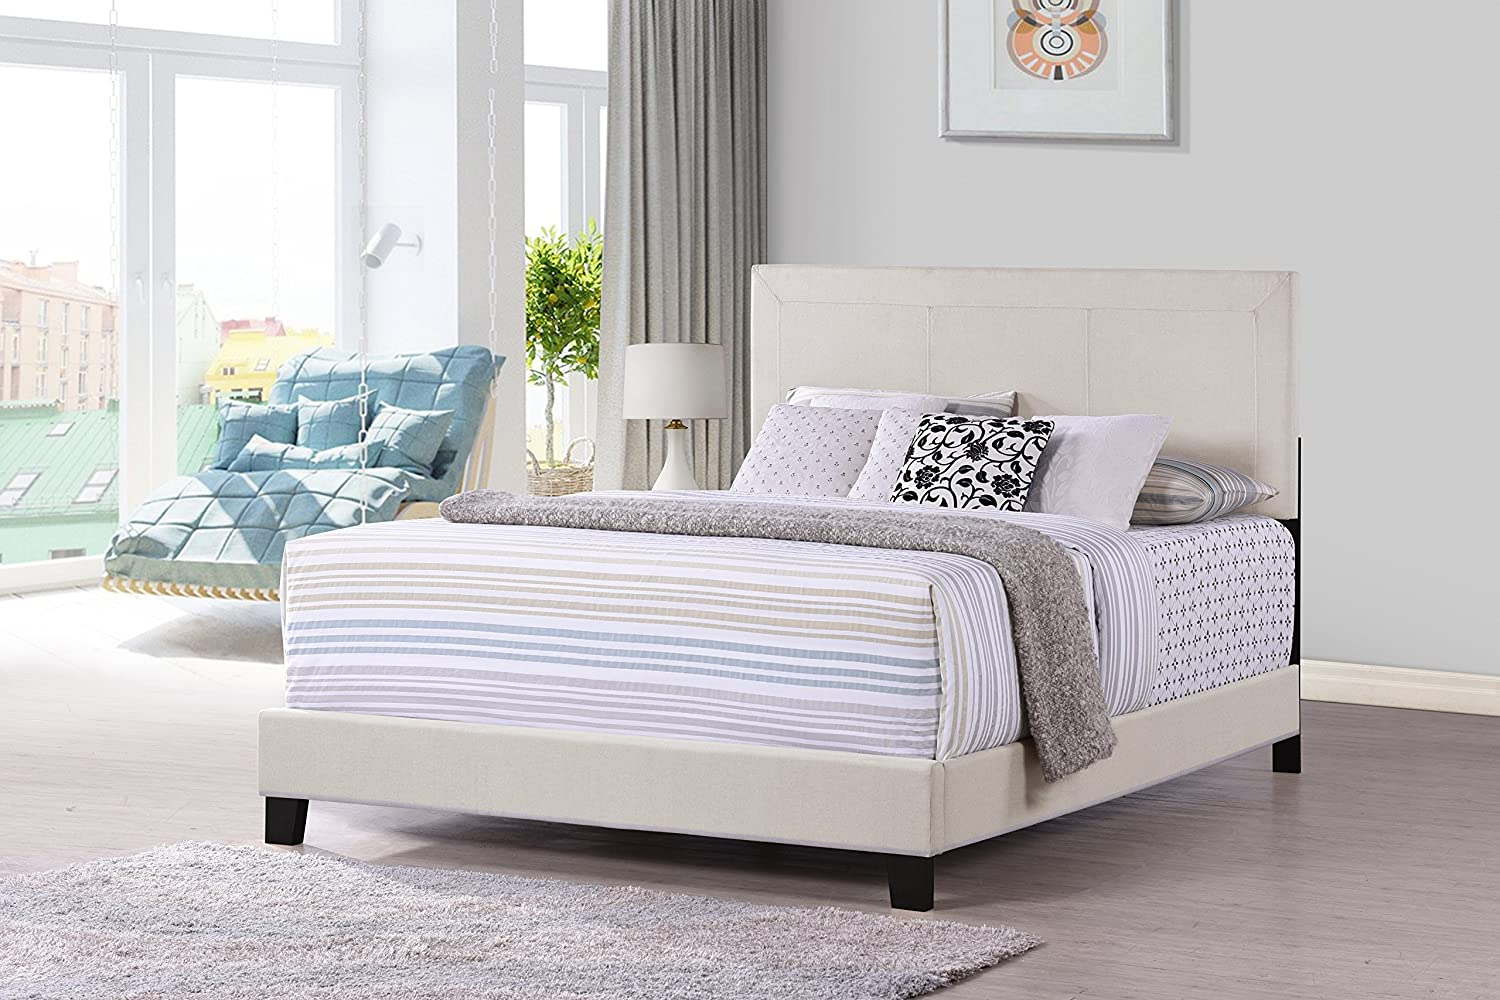 Furniture World Otto Classic Upholstered Headboard, Twin, Cream (Footboard and Side Rails Sold Separately)